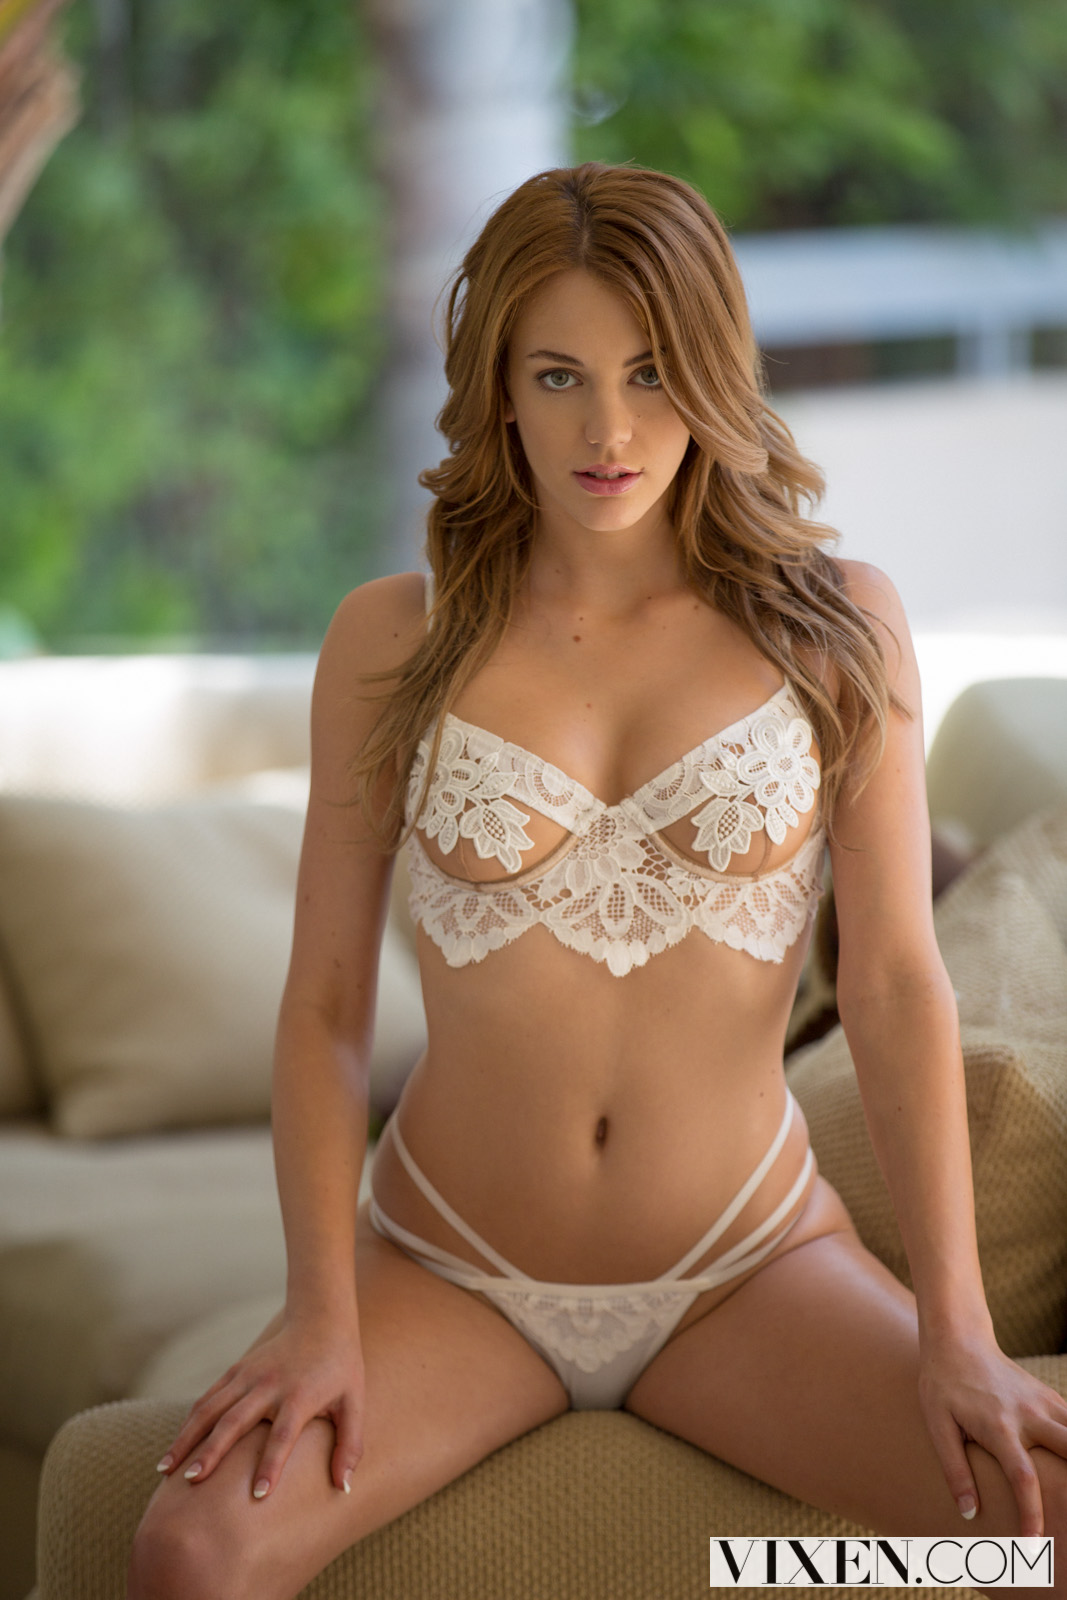 canadian young ladies nude